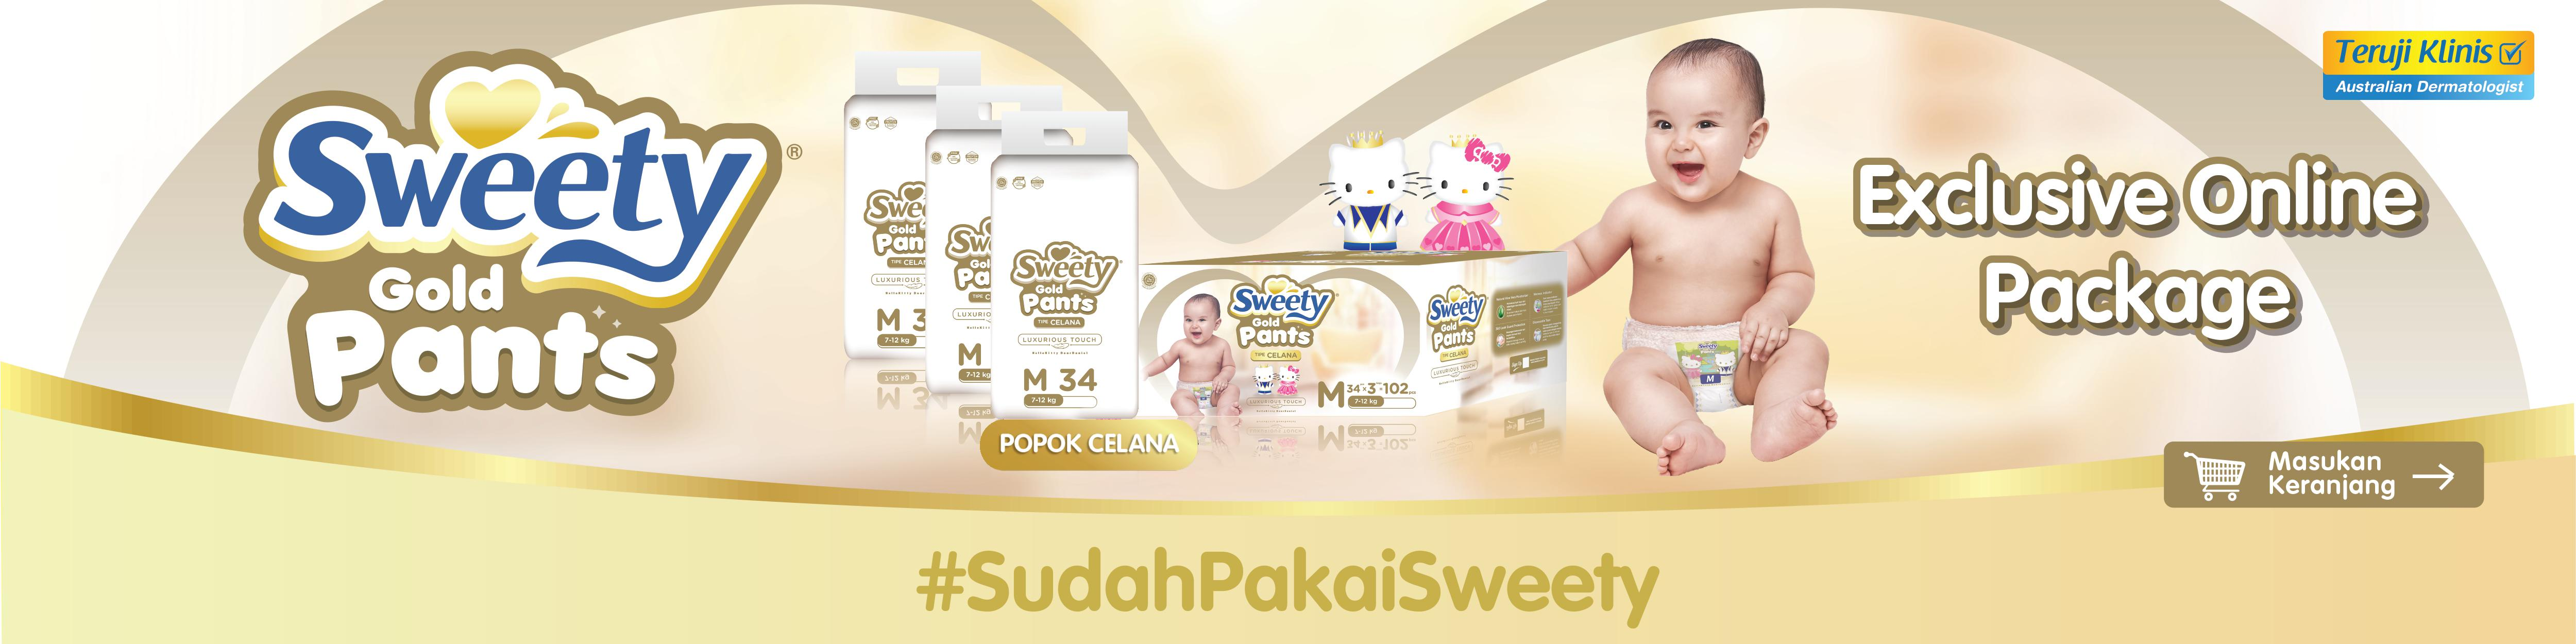 Sweety Gold